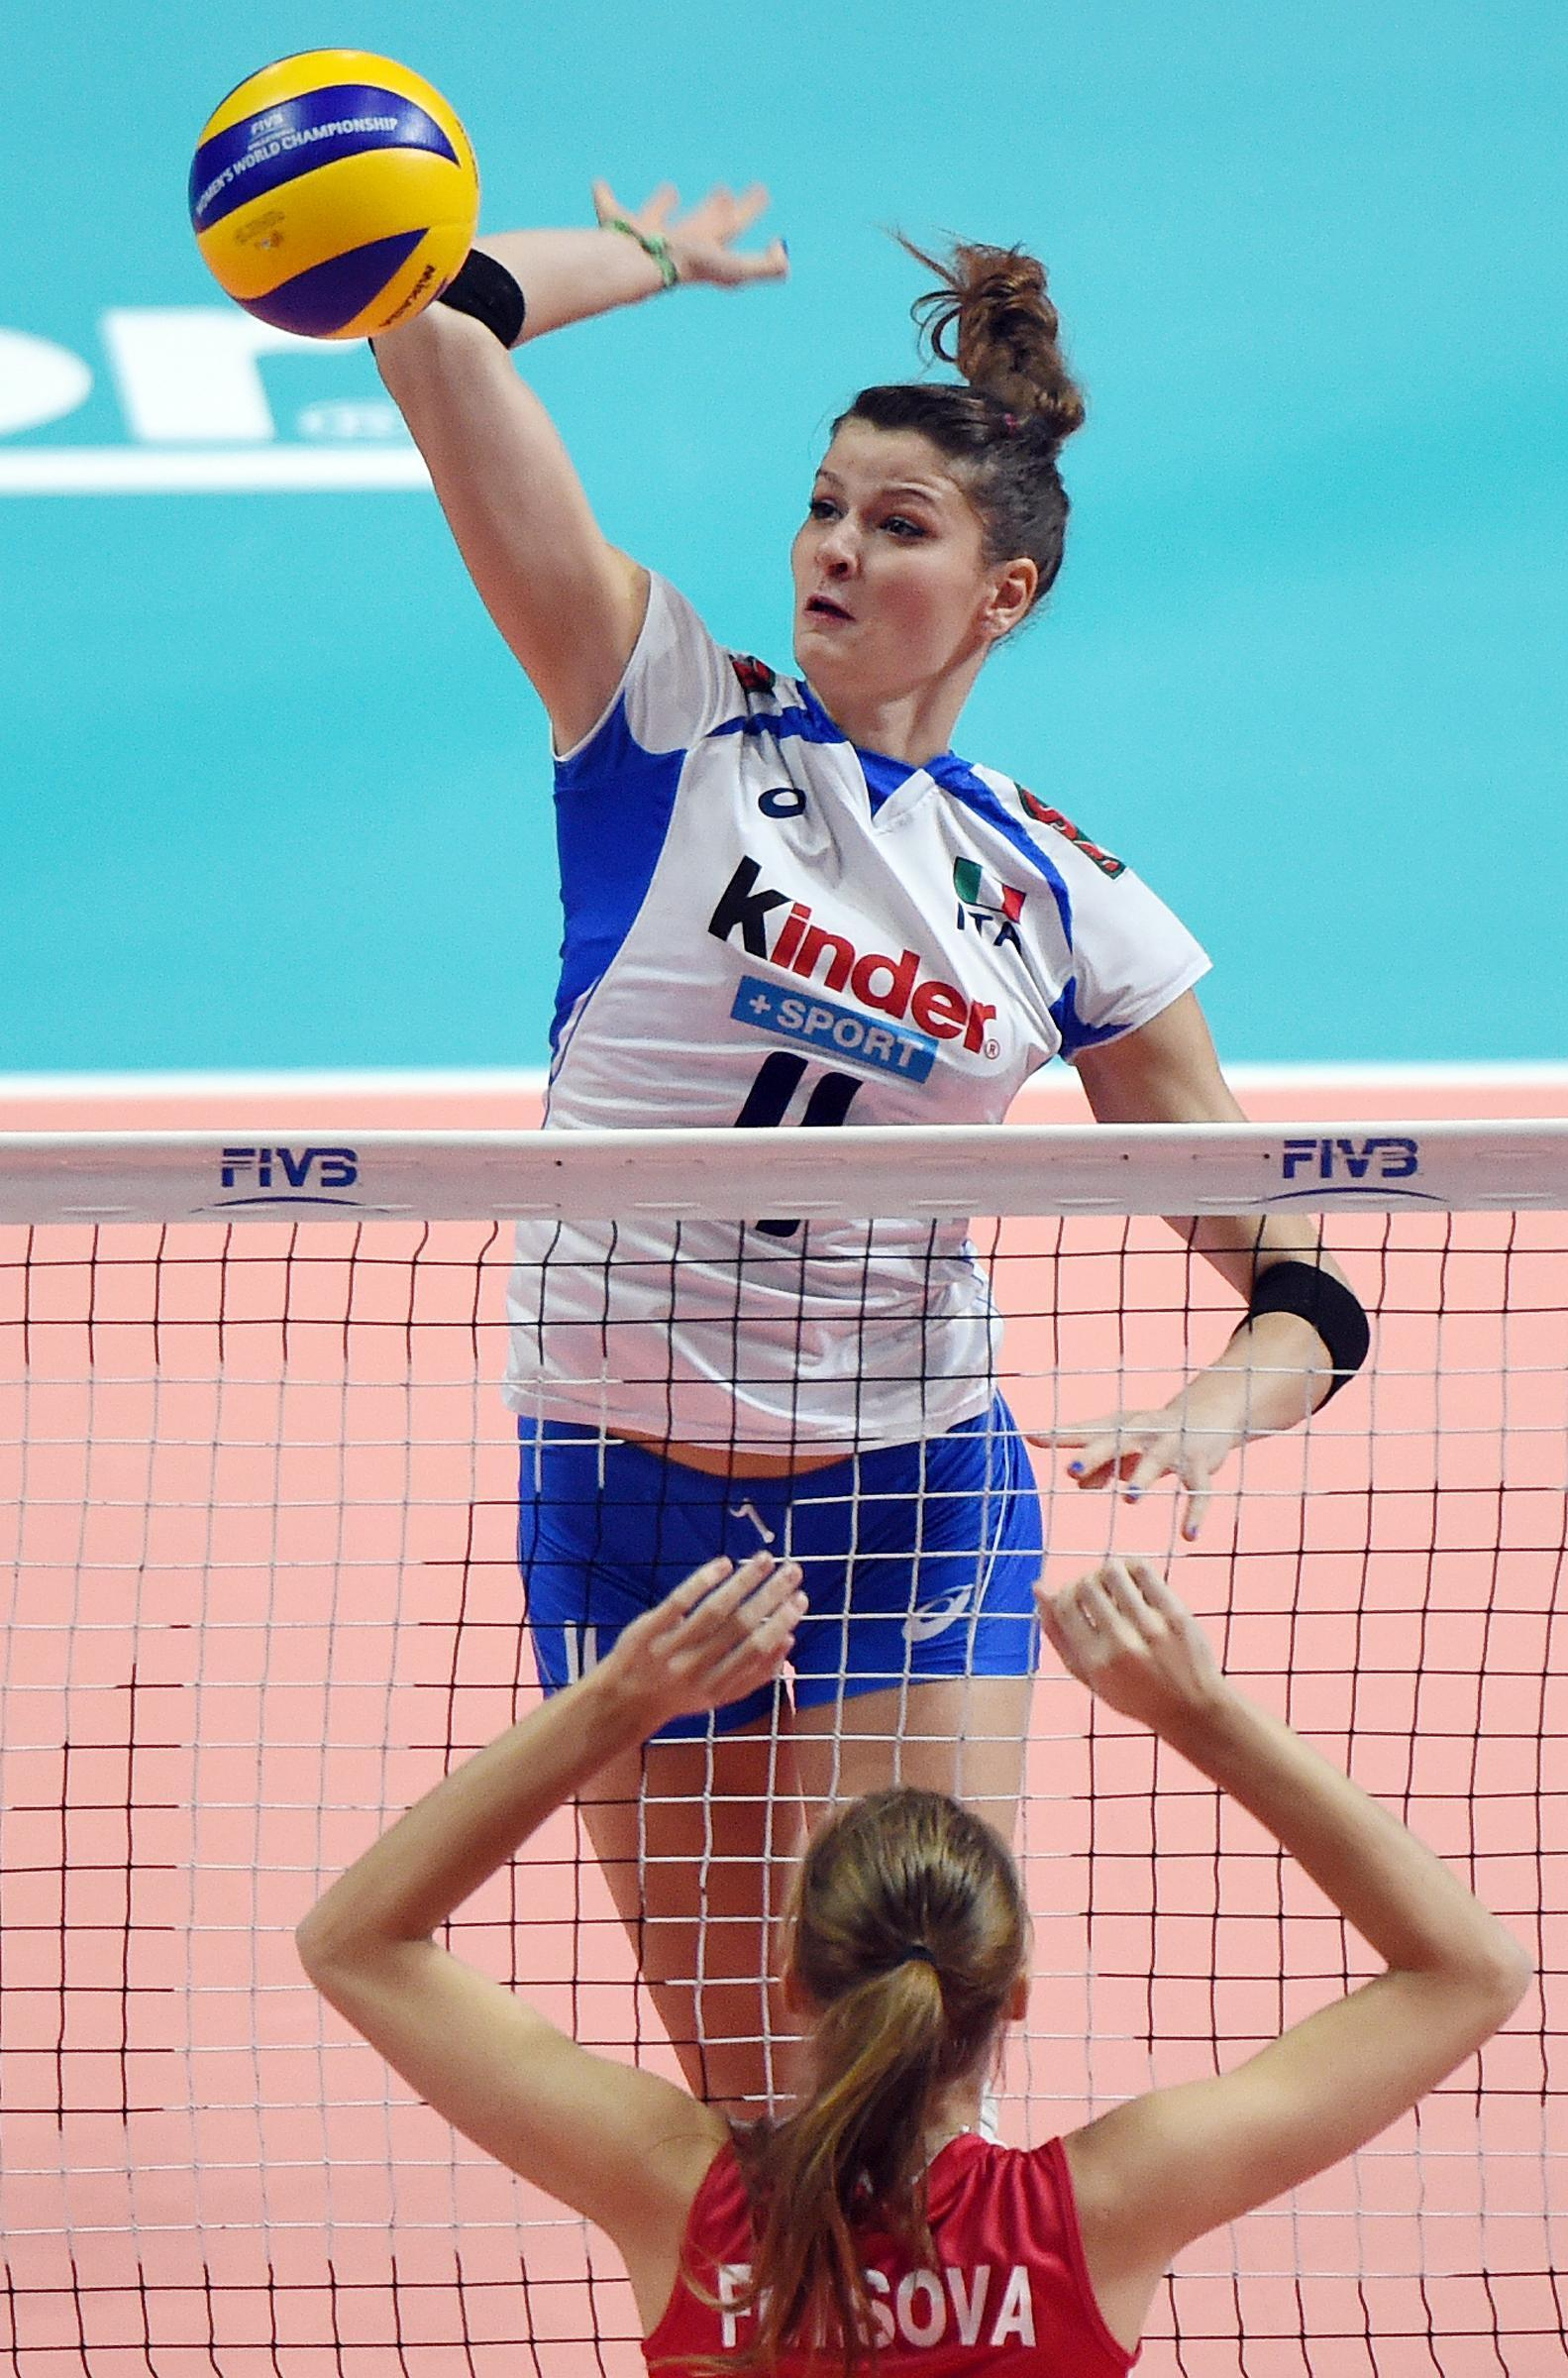 italia russia volley femminile oggi - photo #13